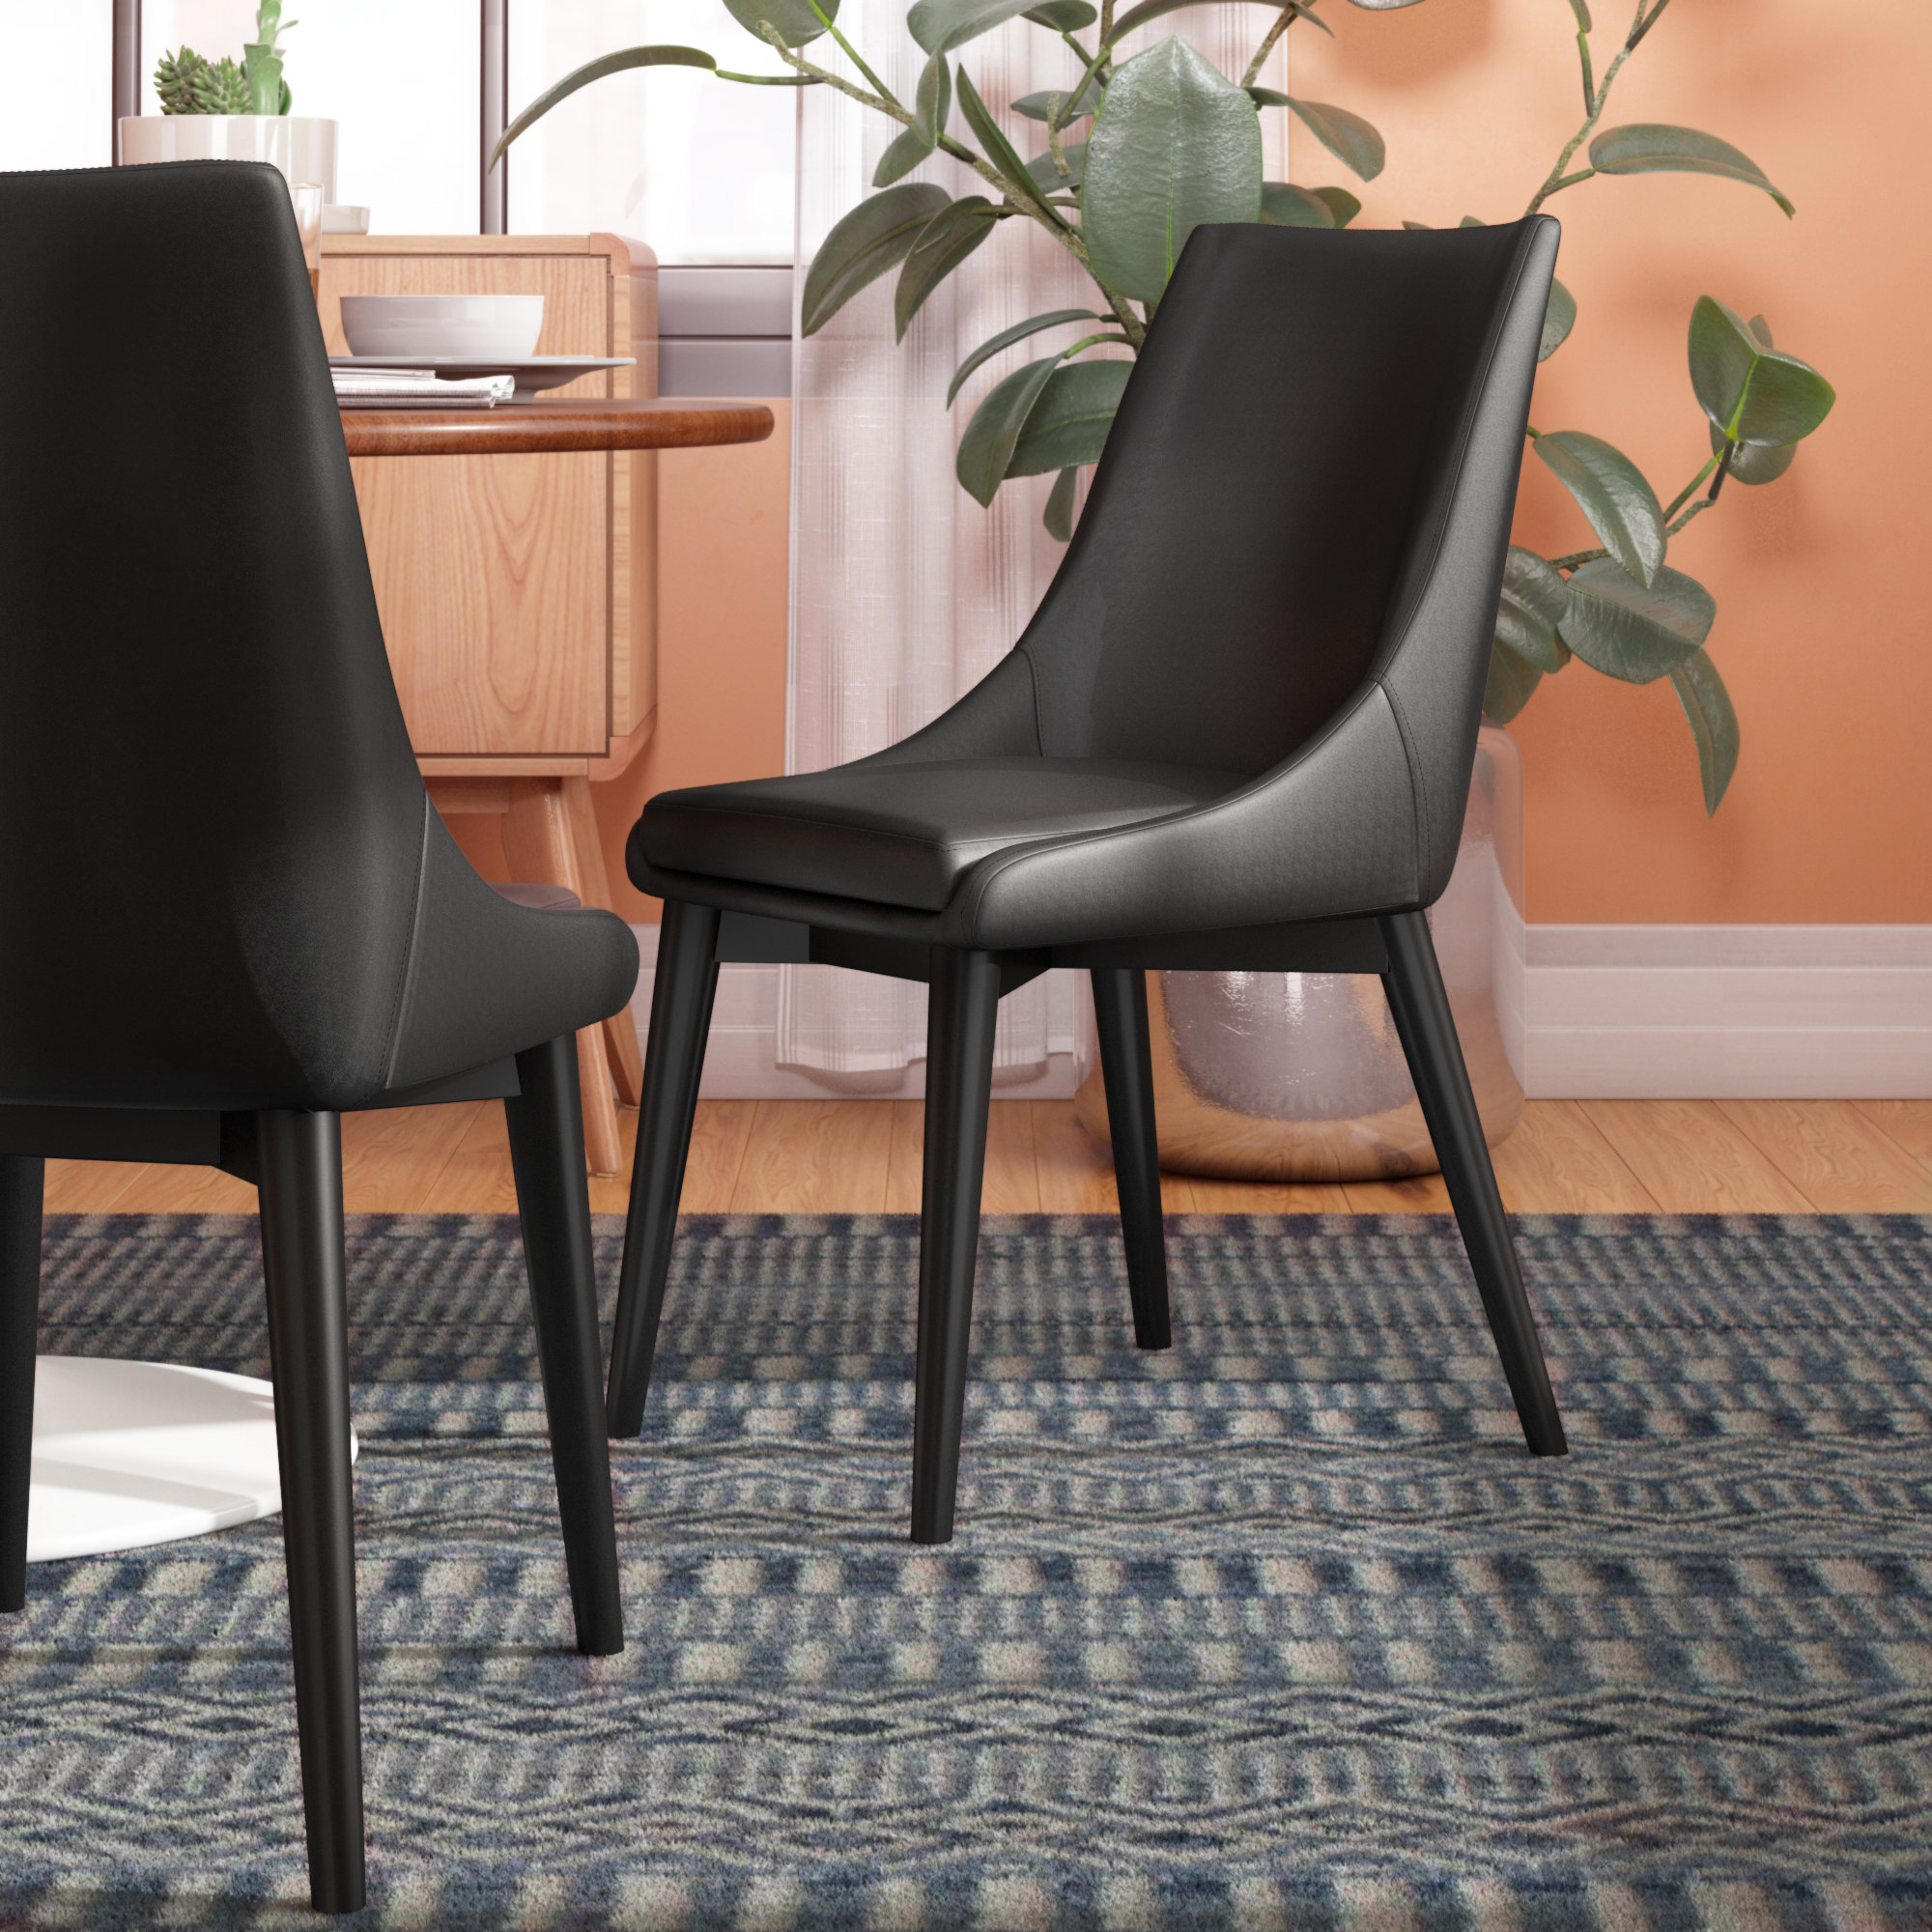 Adult Princess Chair | Wayfair Intended For Carbon Loft Ariel Rocking Chairs In Espresso Pu And Walnut (View 17 of 20)